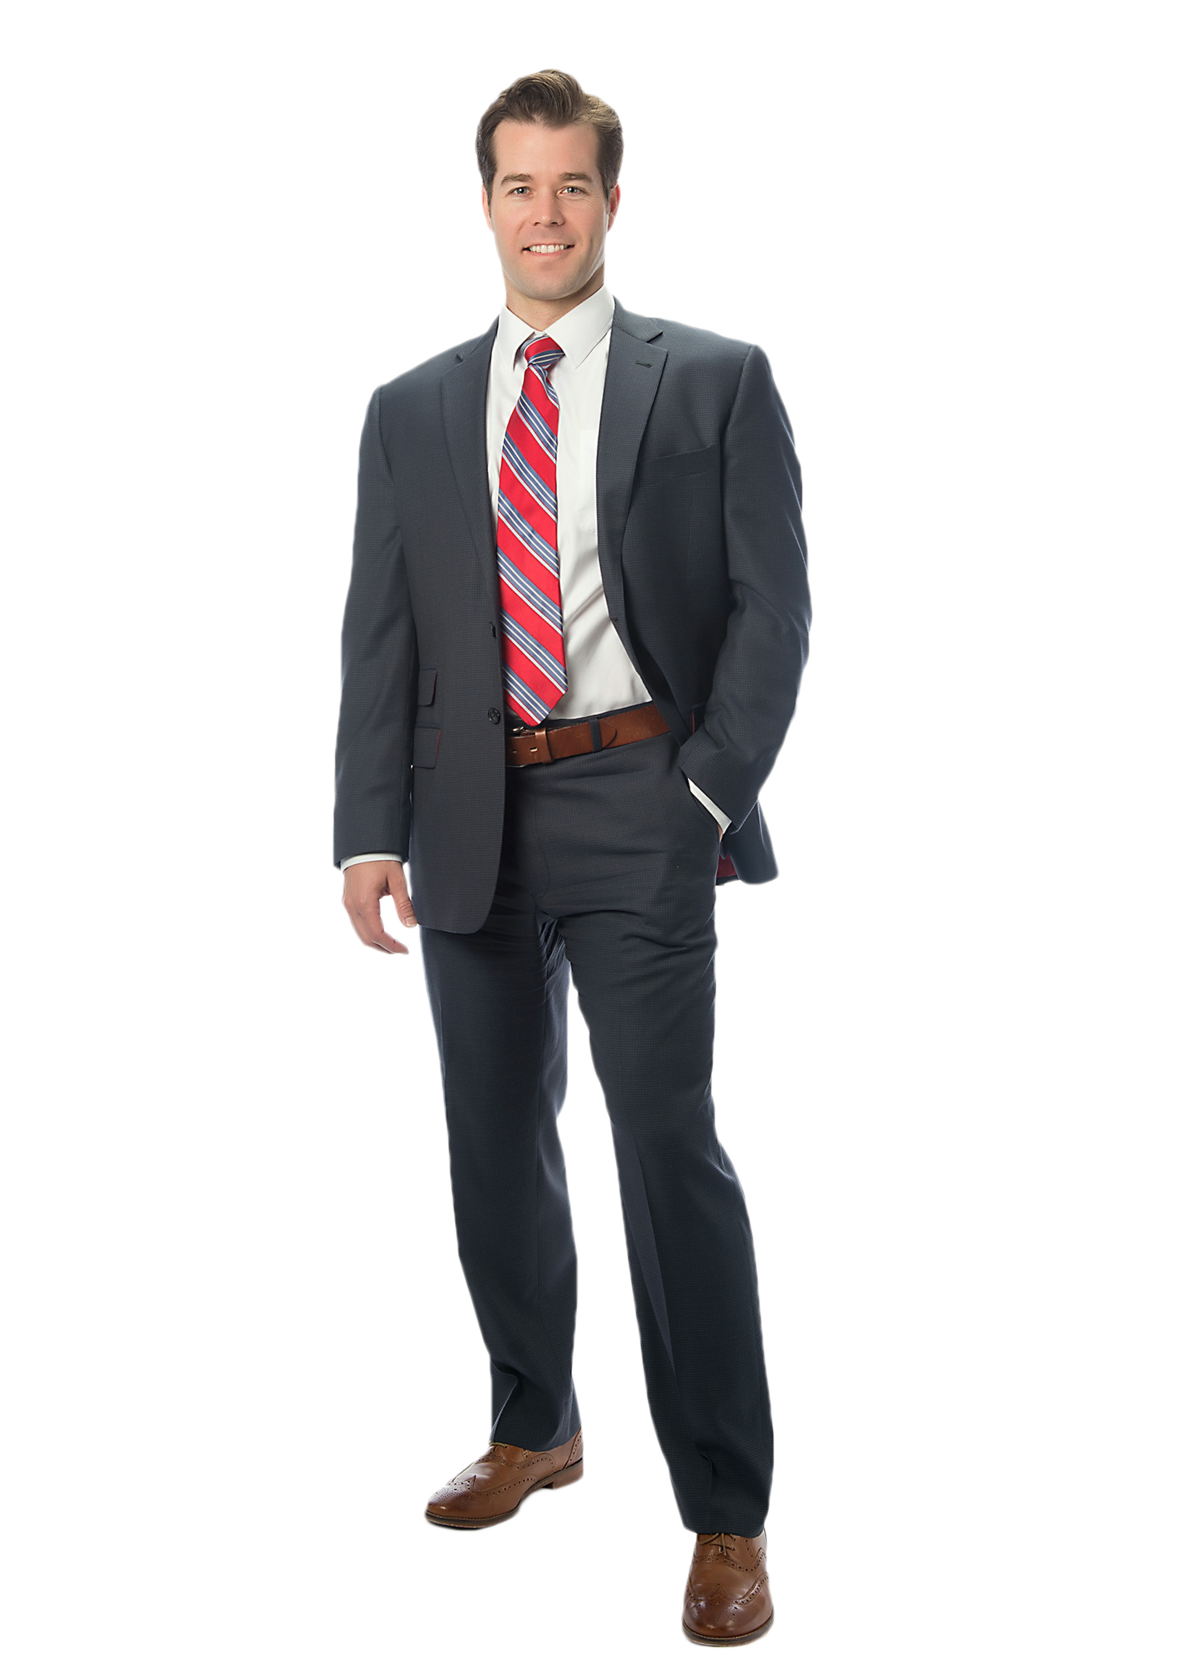 Angus Full Body Web Version.png